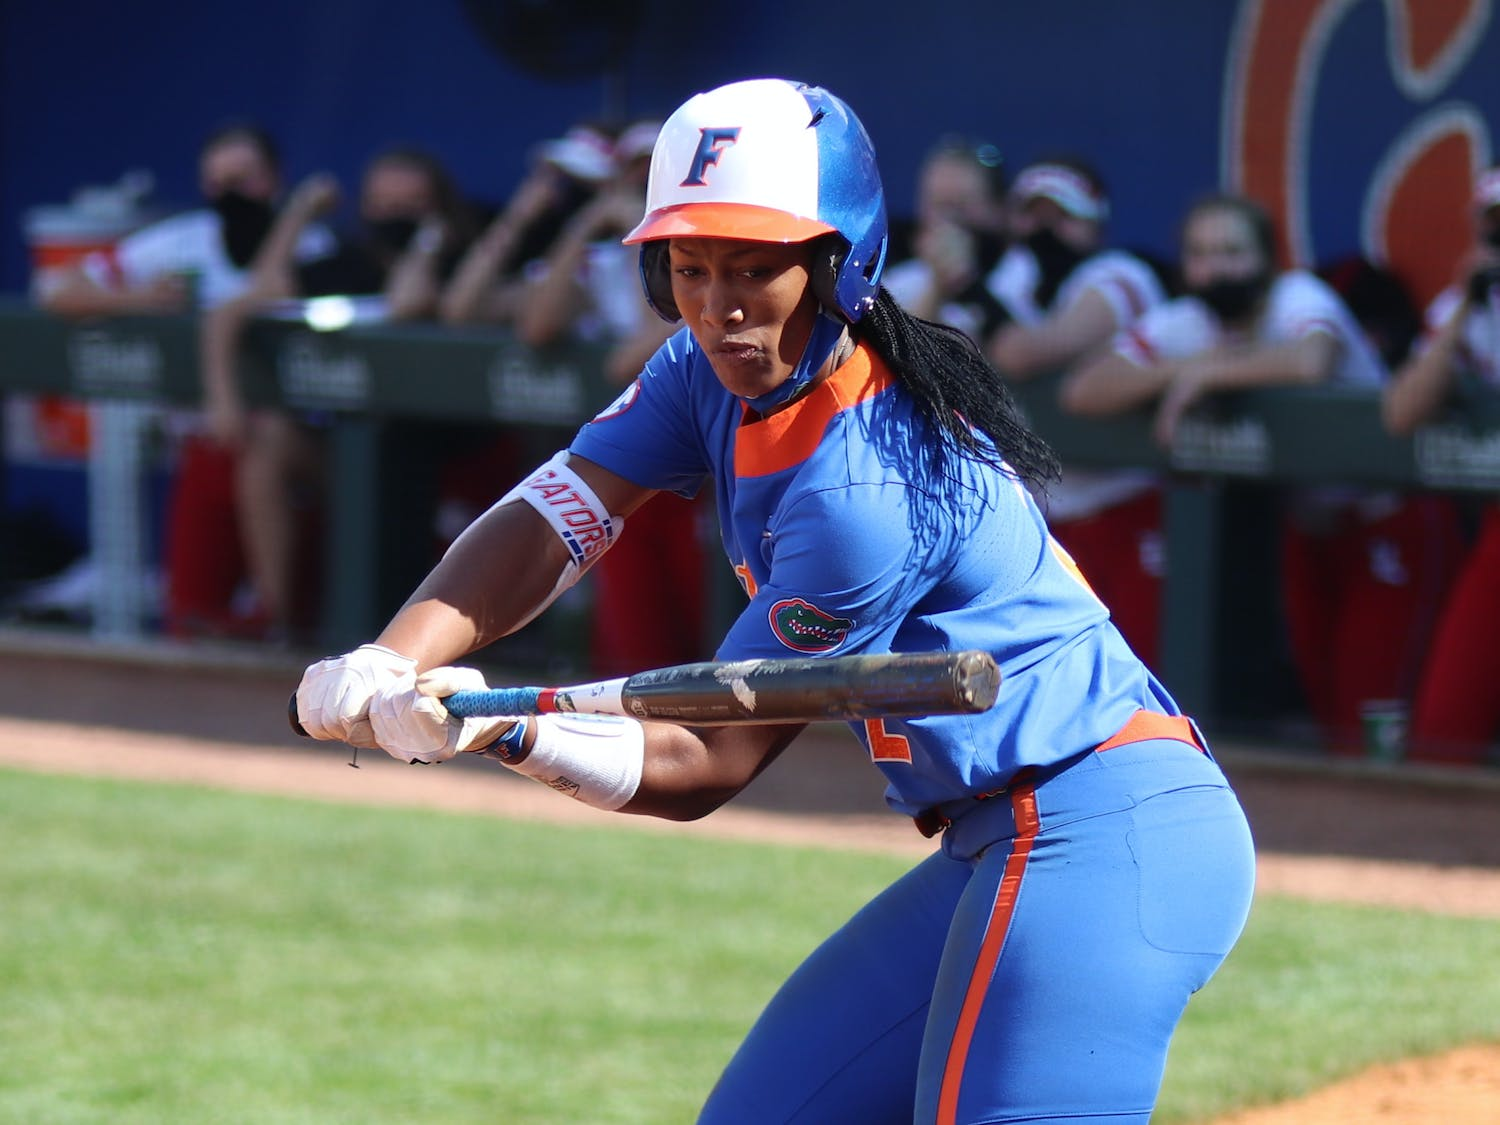 Florida clinched a 4-2 victory on Sunday afternoon at Katie Seashole Pressly Stadium. Photo from UF-Louisville game Feb. 27.